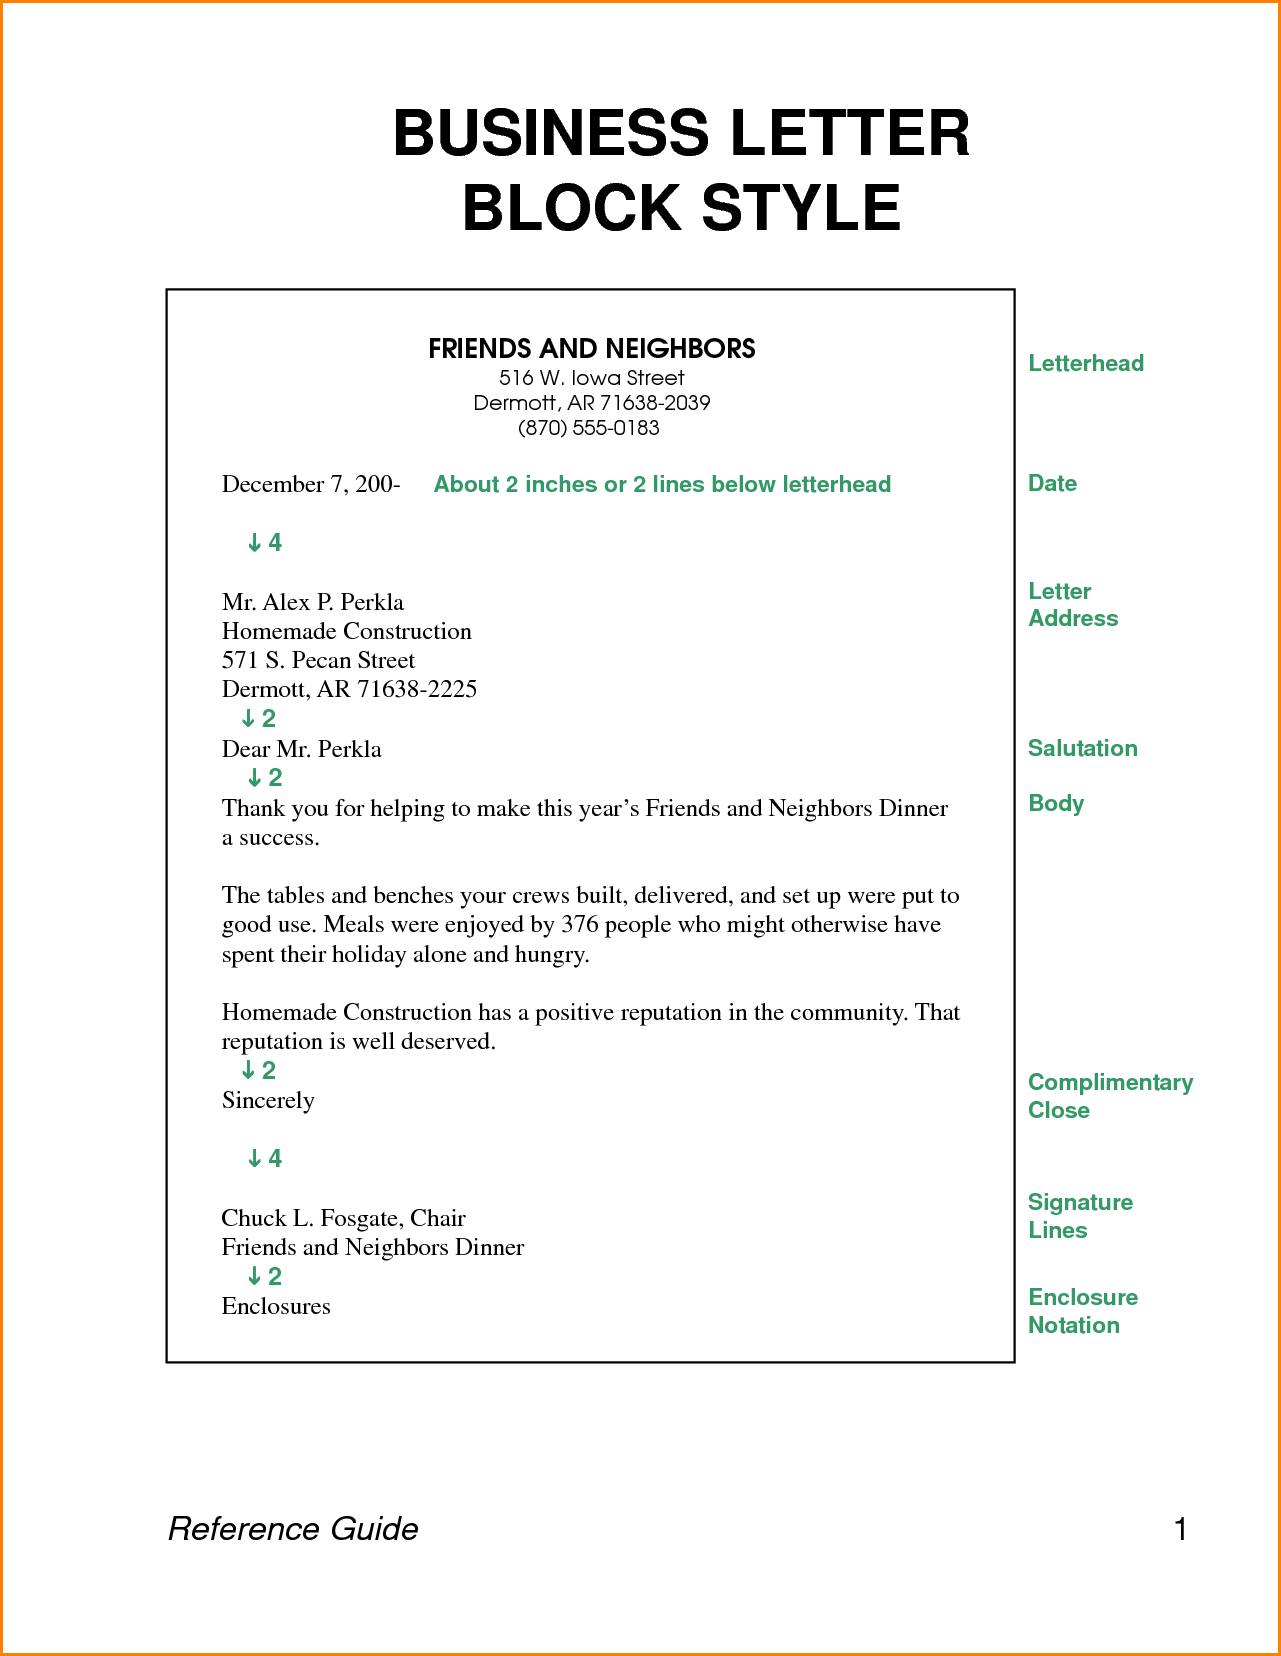 Business letter block style letters format download free documents business letter block style letters format download free documents pdf word spiritdancerdesigns Images